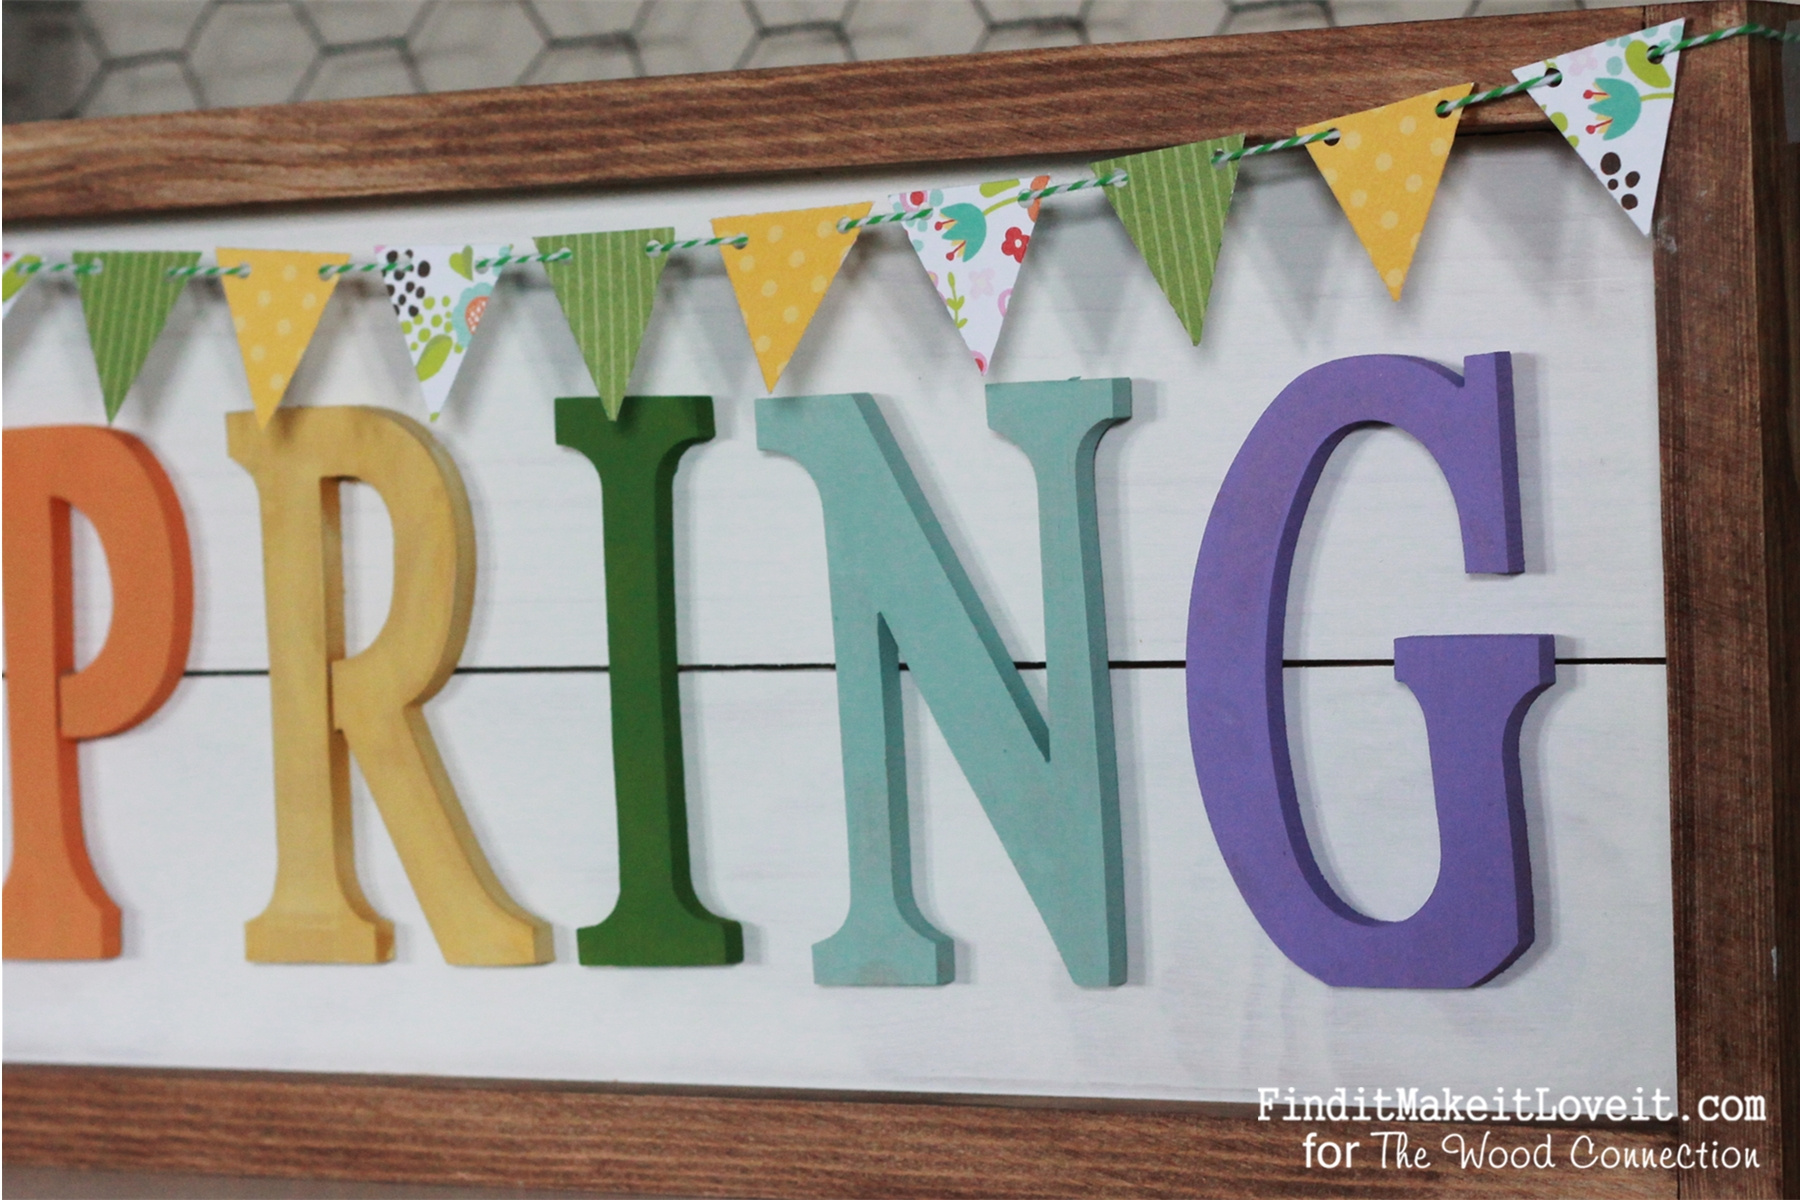 Framed Plank Spring sign (3)